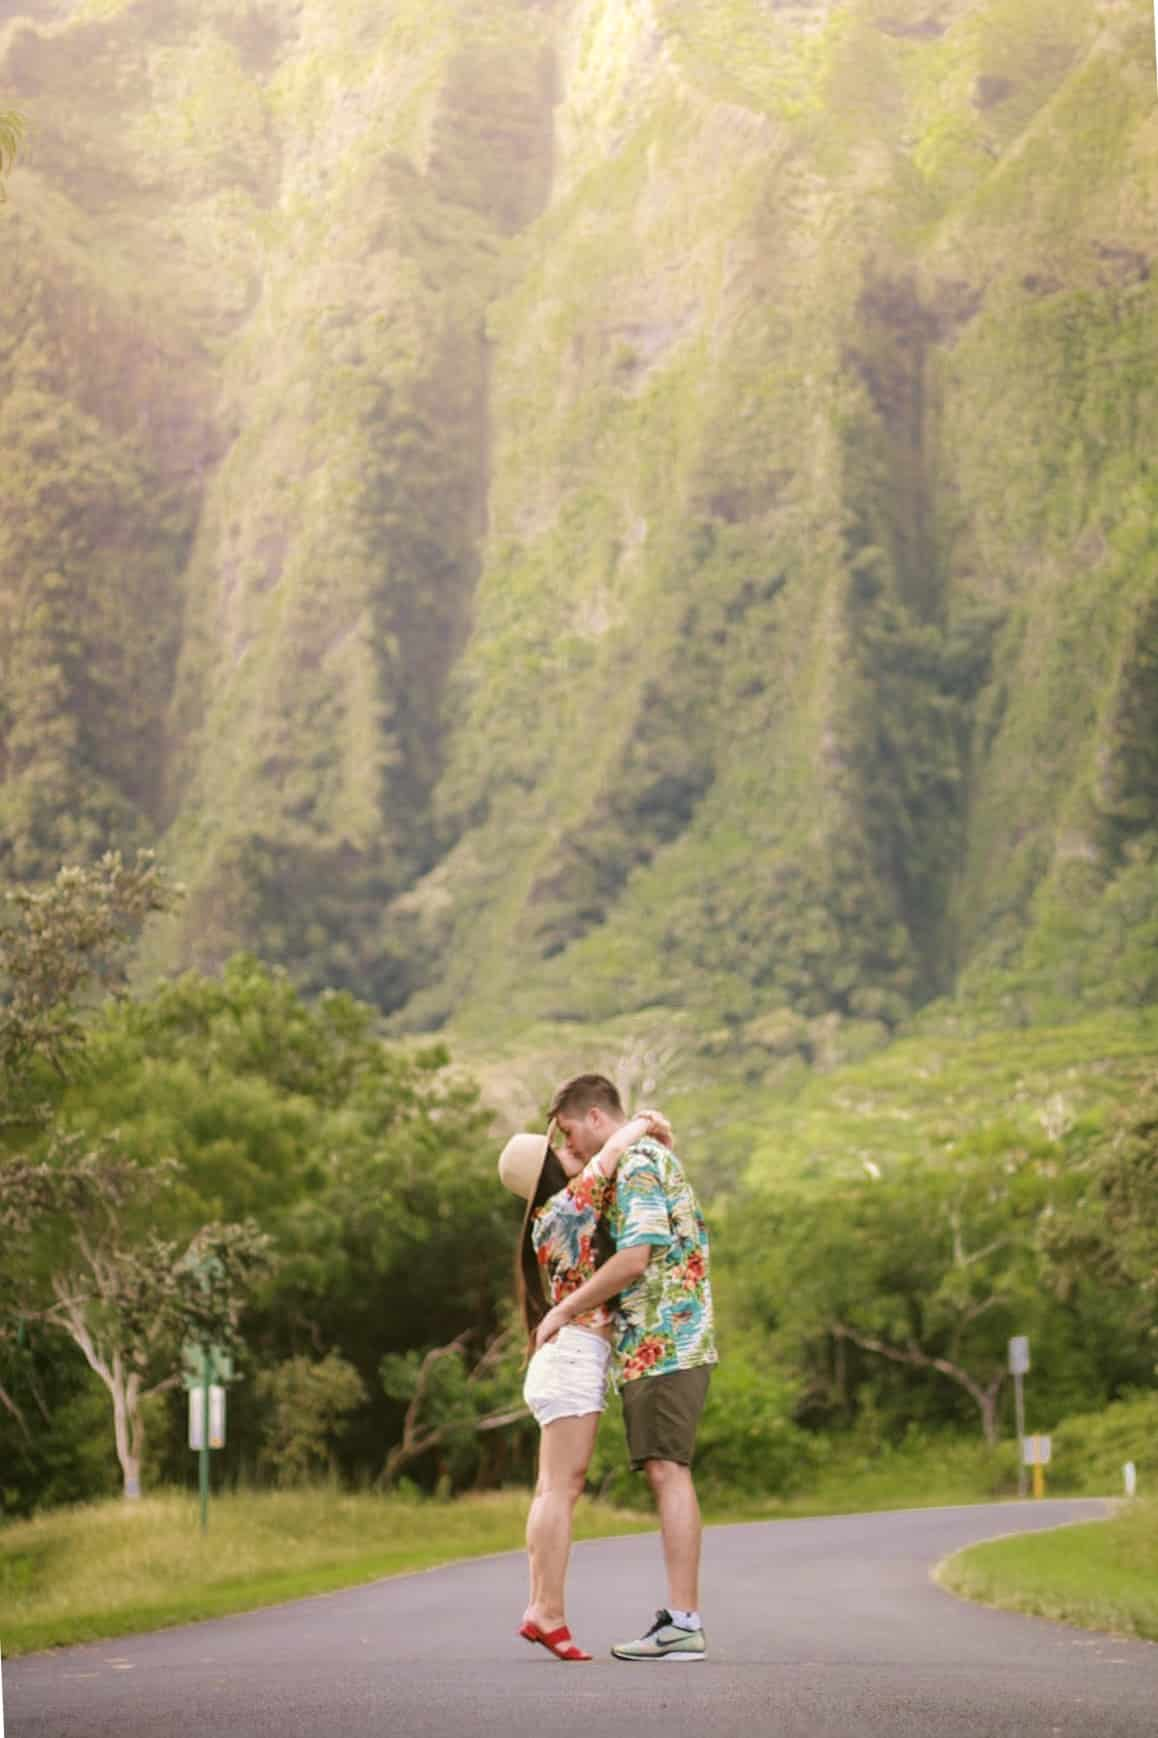 The Ultimate 10 Day Oahu Itinerary